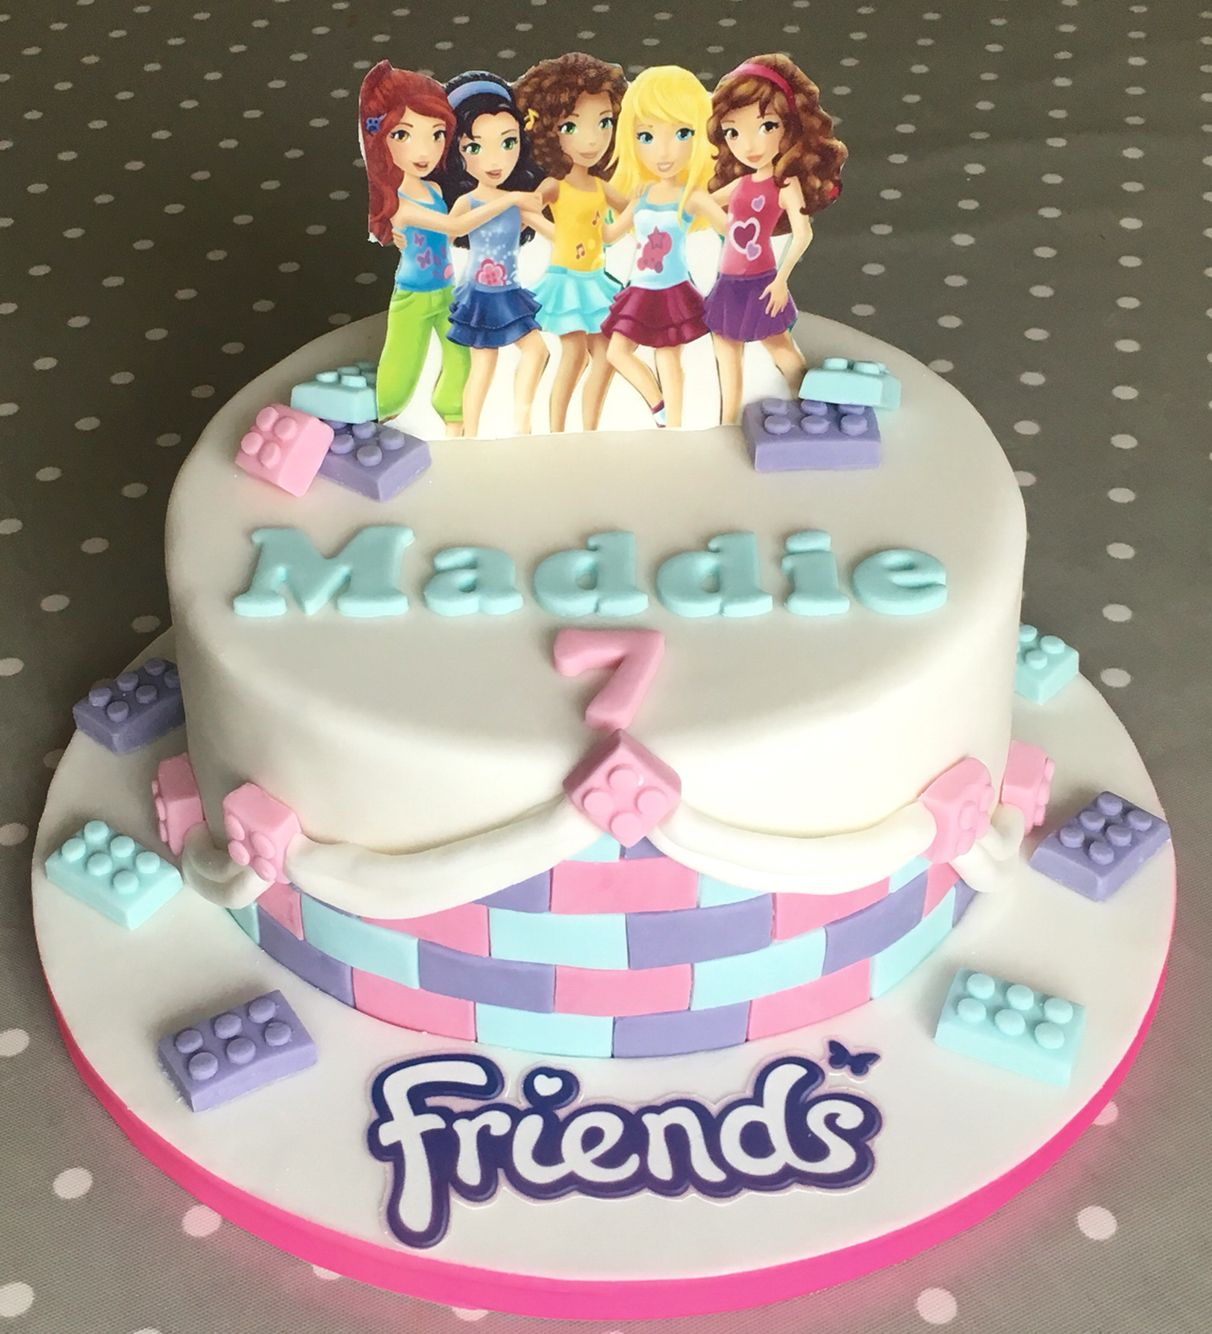 Superb Lego Friends Cake Lego Friends Cake Lego Birthday Cake Personalised Birthday Cards Paralily Jamesorg